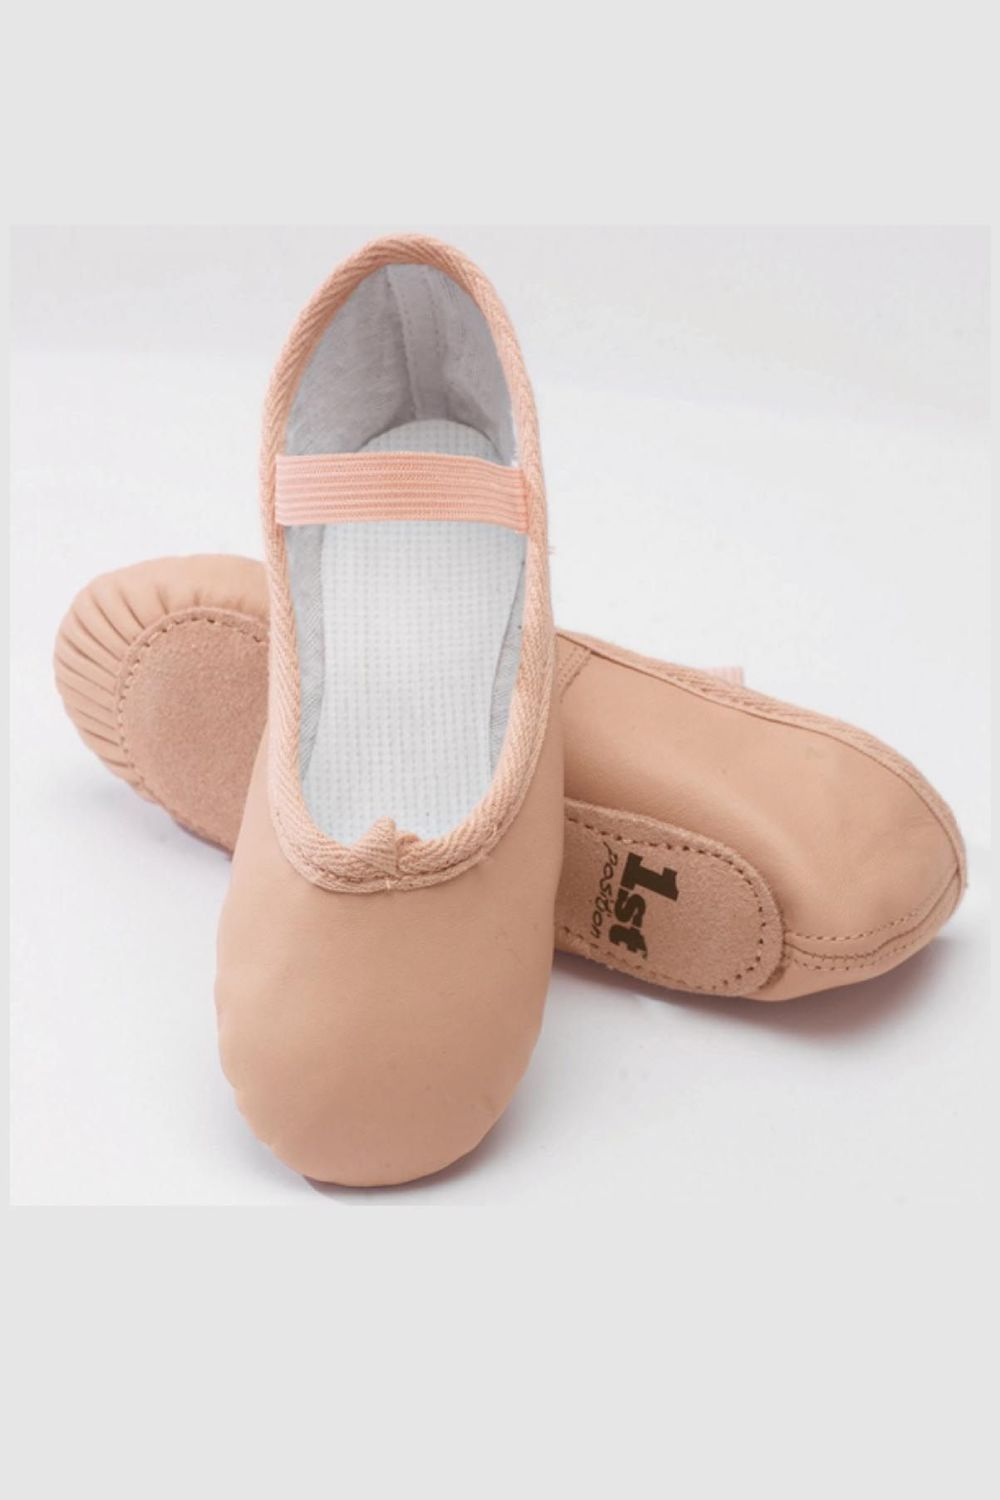 Leather Ballet Shoe (Child 8 - Adult 5)